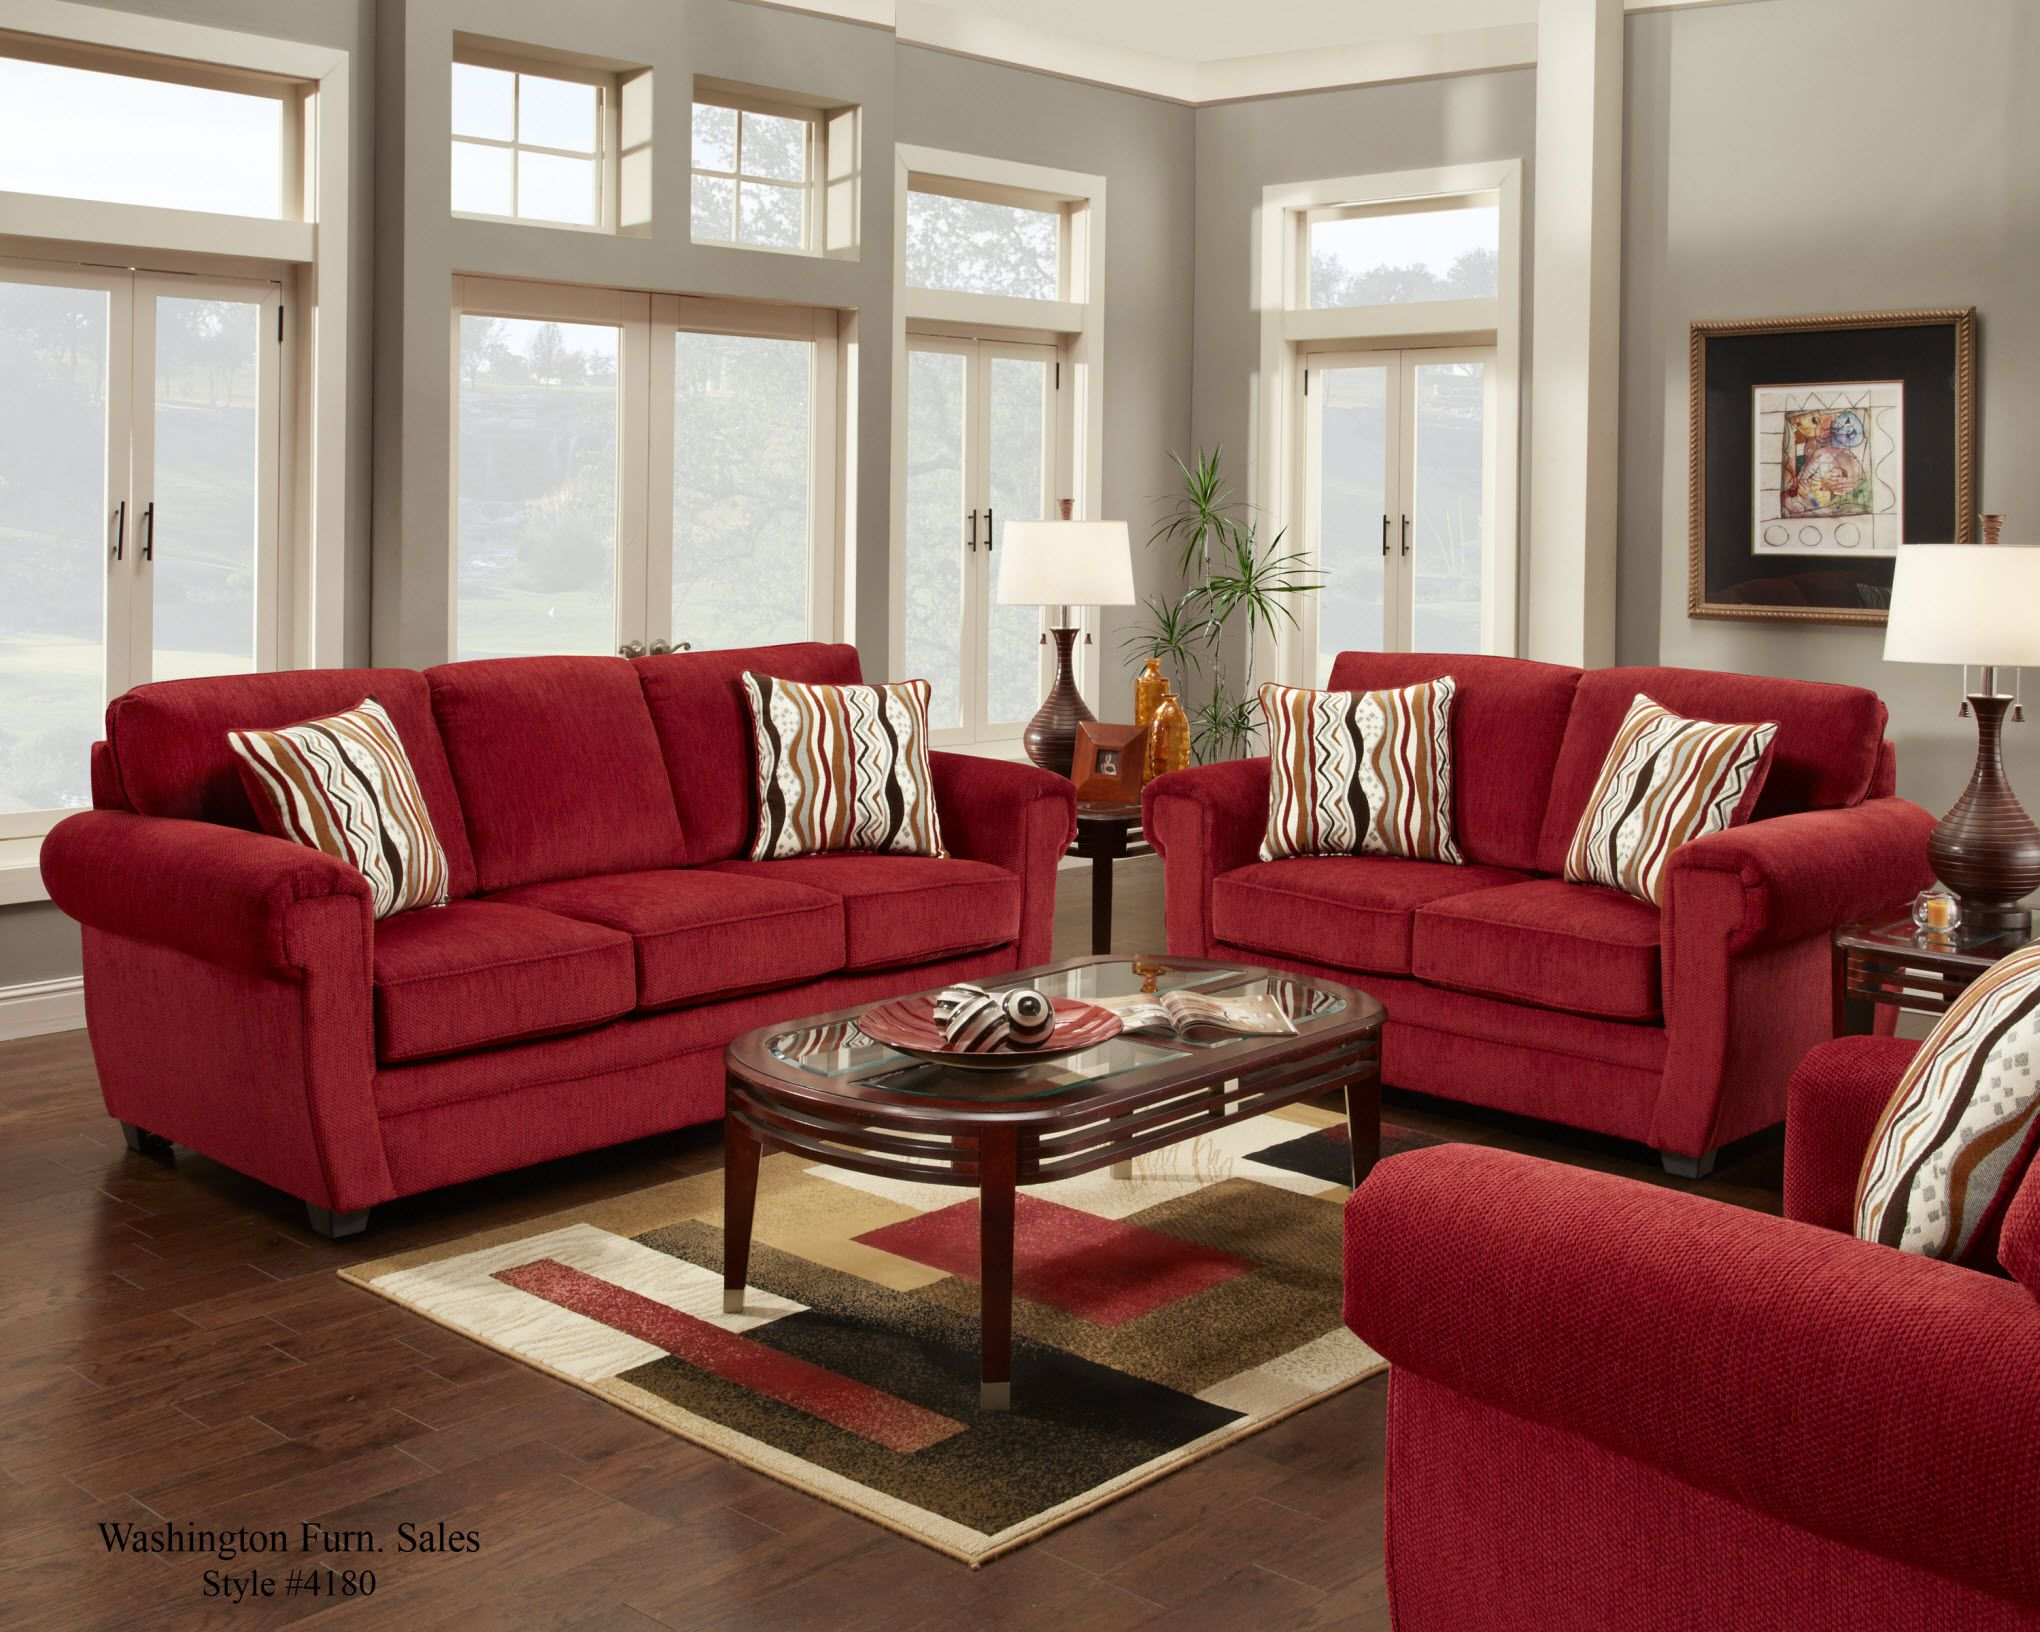 Wohnzimmer Streichen Rote Couch Wall Color Red Couch Decorating Ideas Red Sofa Design In